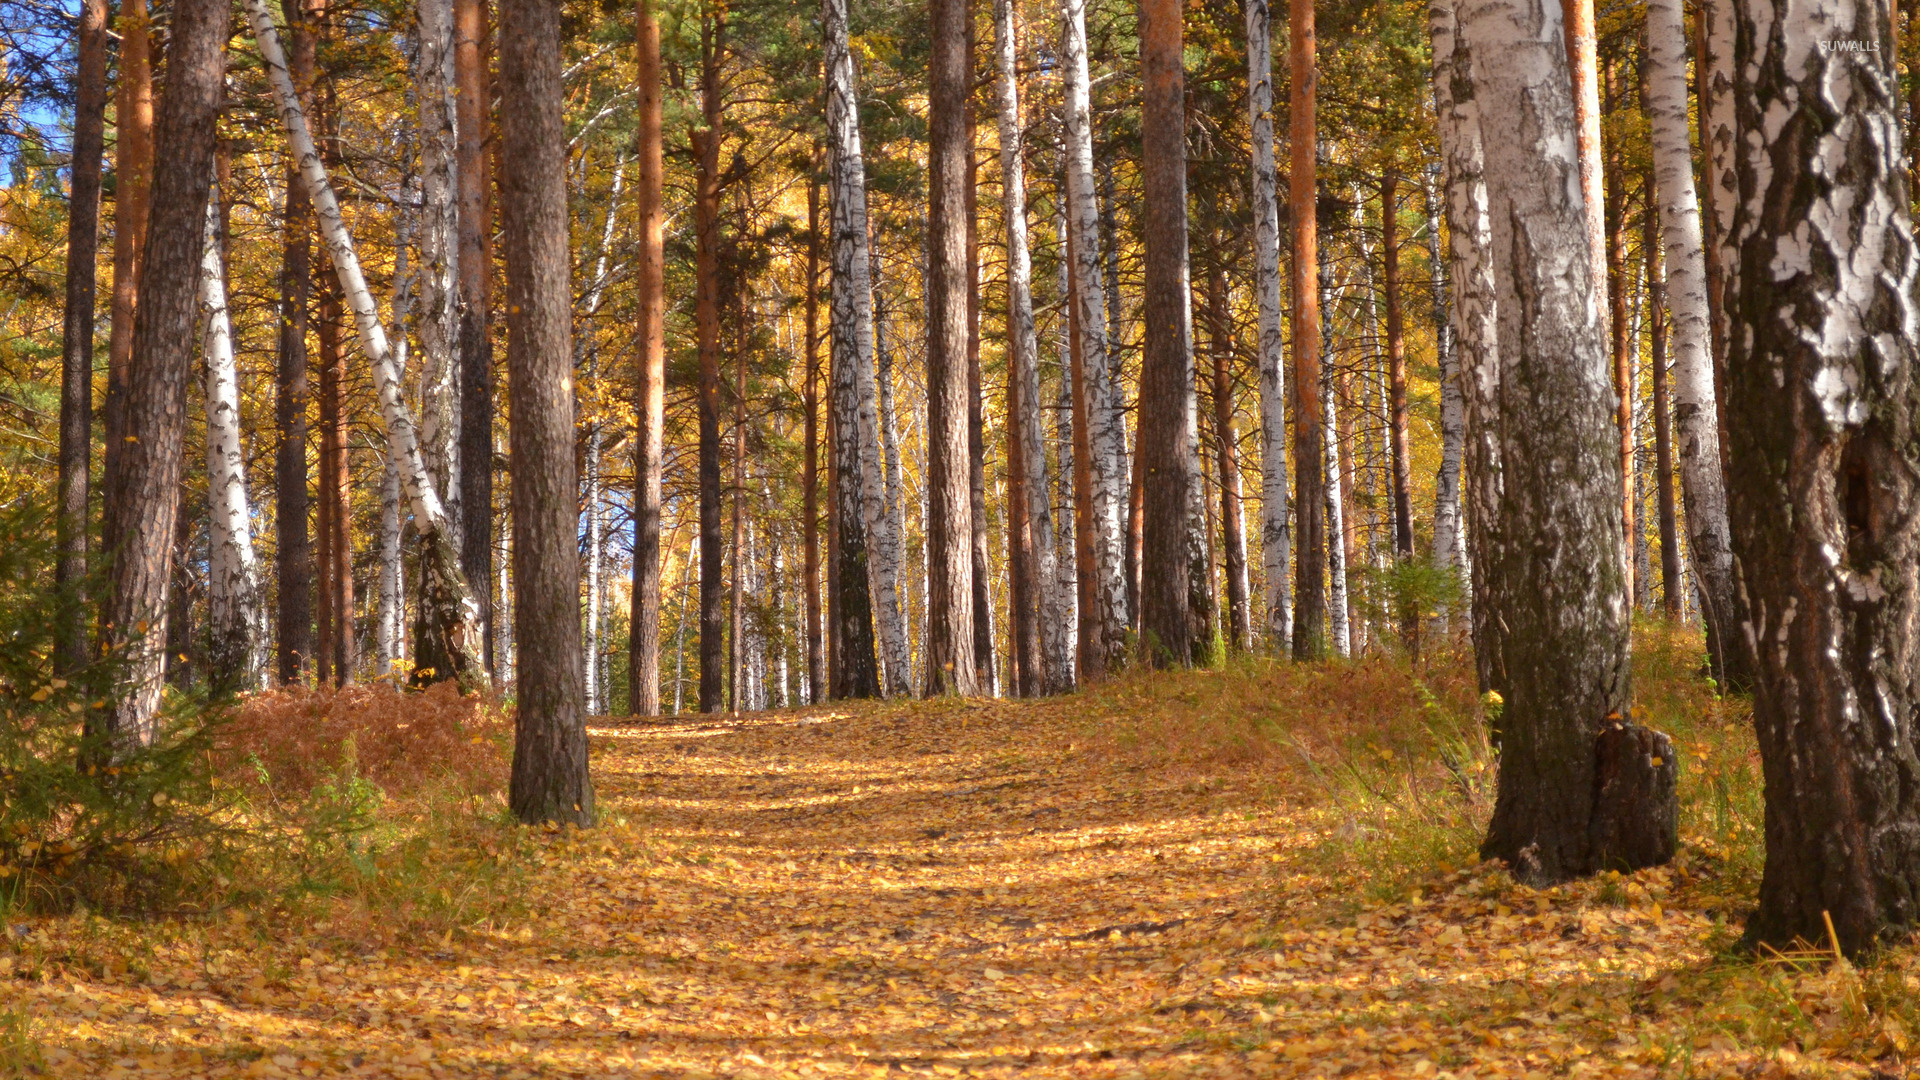 Fall Tree Desktop Wallpaper Trail Of Autumn Leaves In The Forest Wallpaper Nature